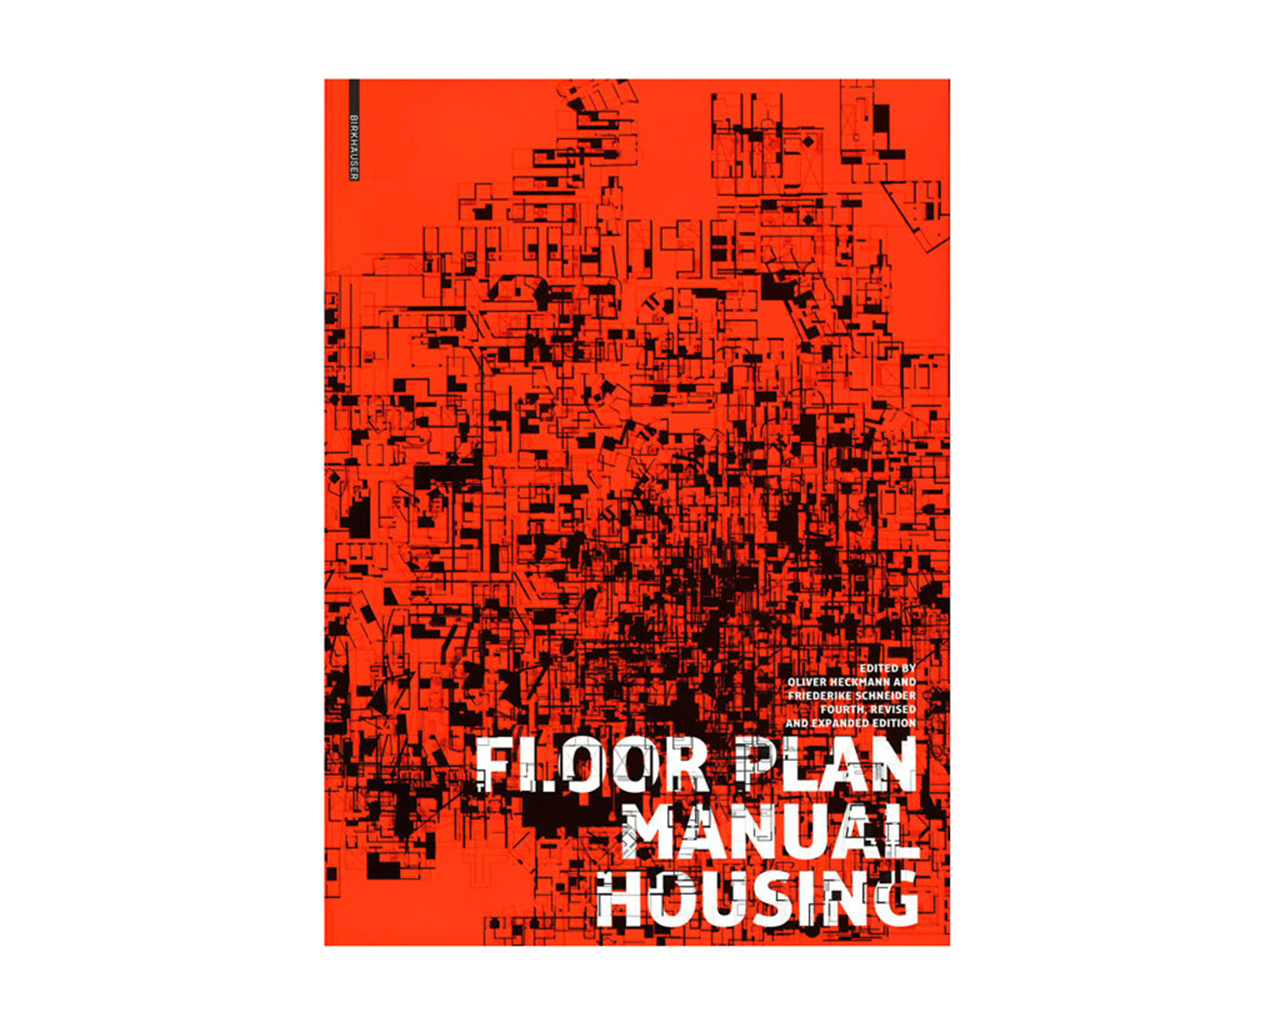 fp-featured-image-floorplan-manual-housing